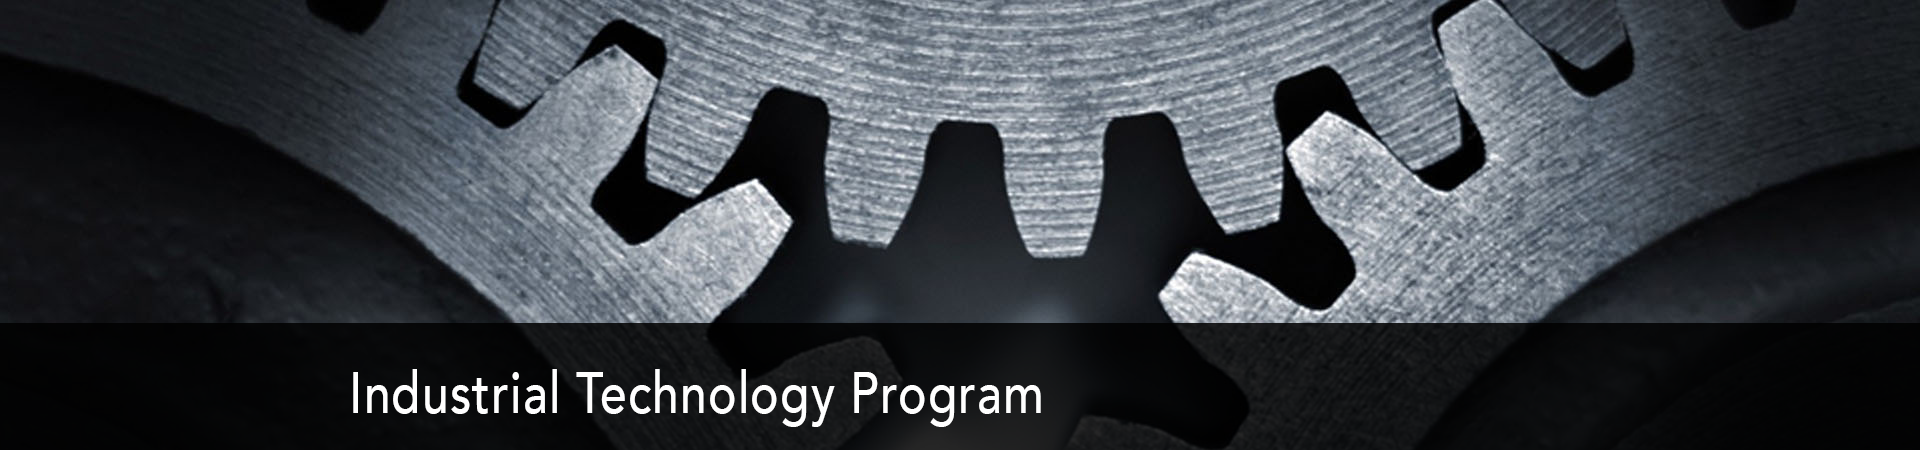 Explore the Industrial Technology Program at NC